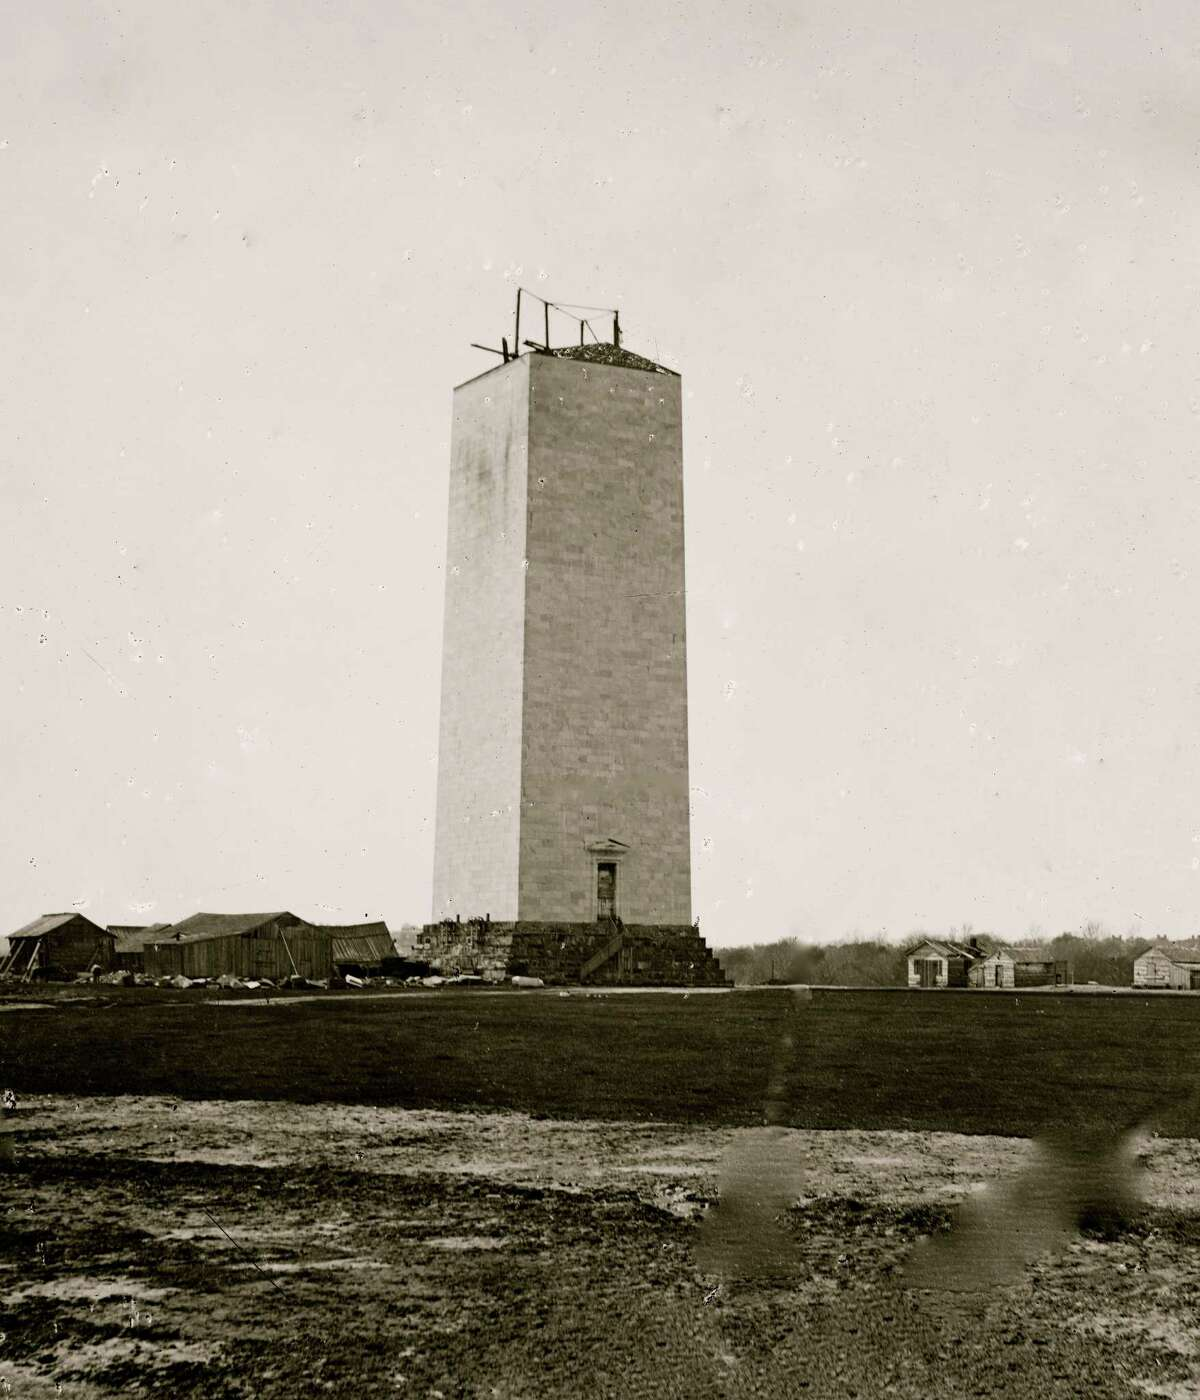 A view of the stalled construction of the Washington Monument in 1864. The Civil War interrupted construction, which began in 1848 but was not finished until 1884.